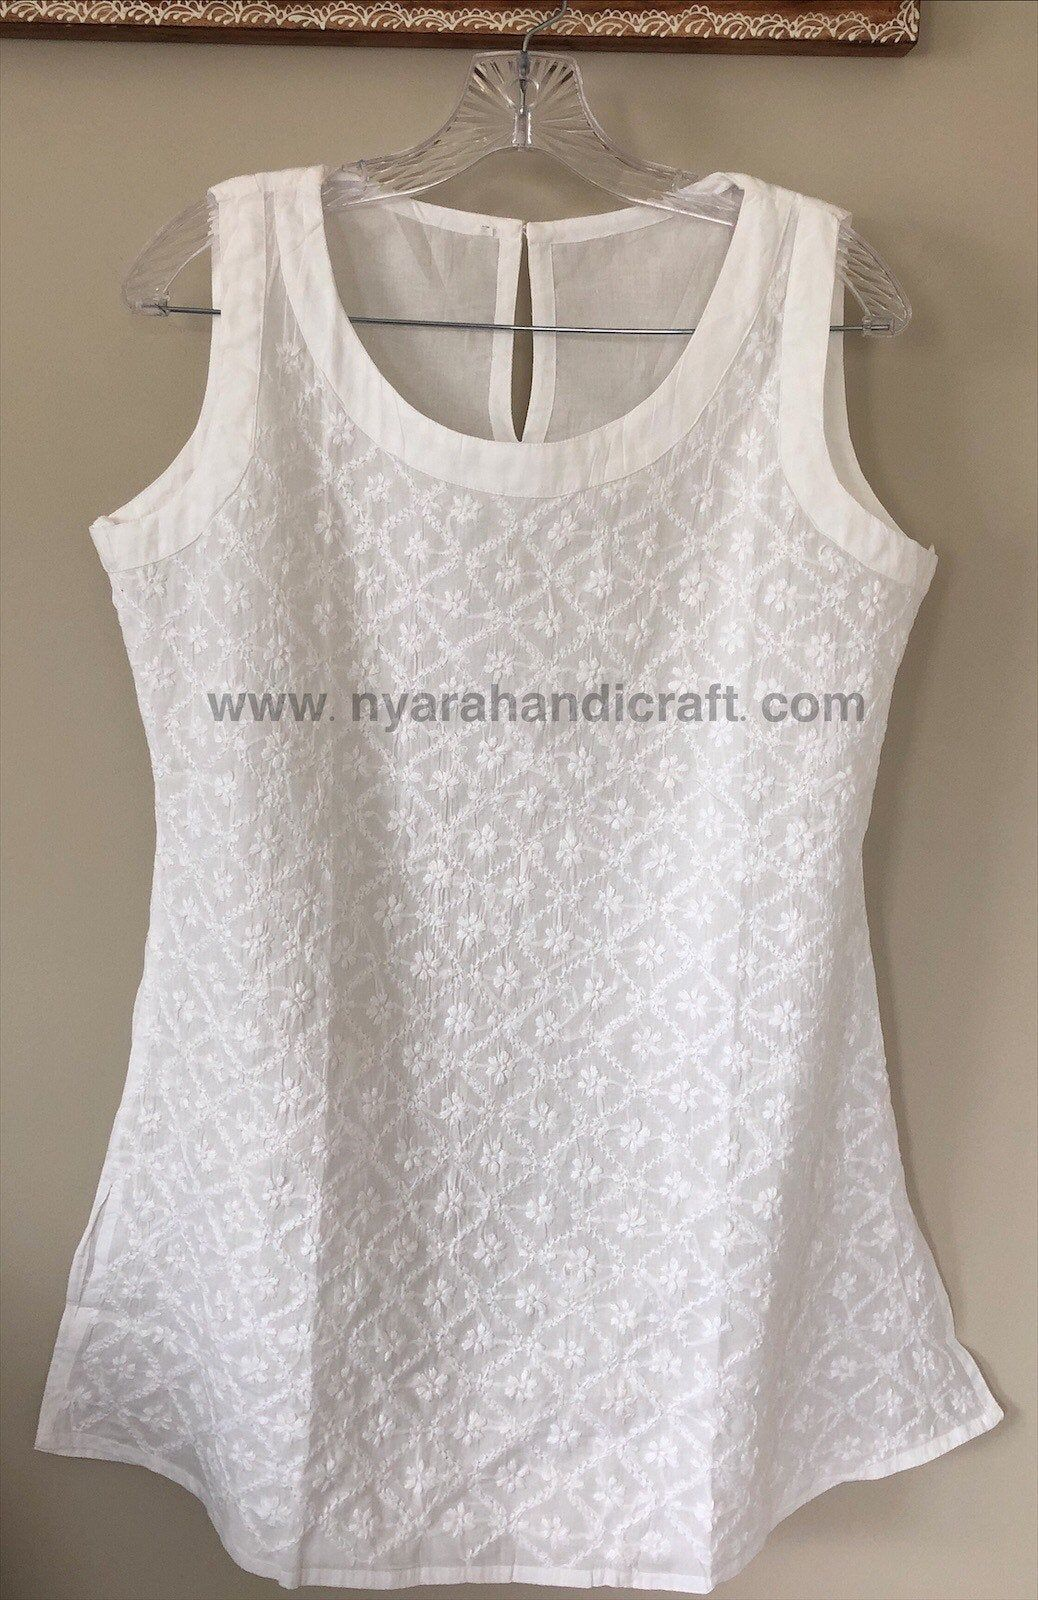 Readymade printed cambric cotton blouse in plus size cambric cotton crop top cotton saree blouse